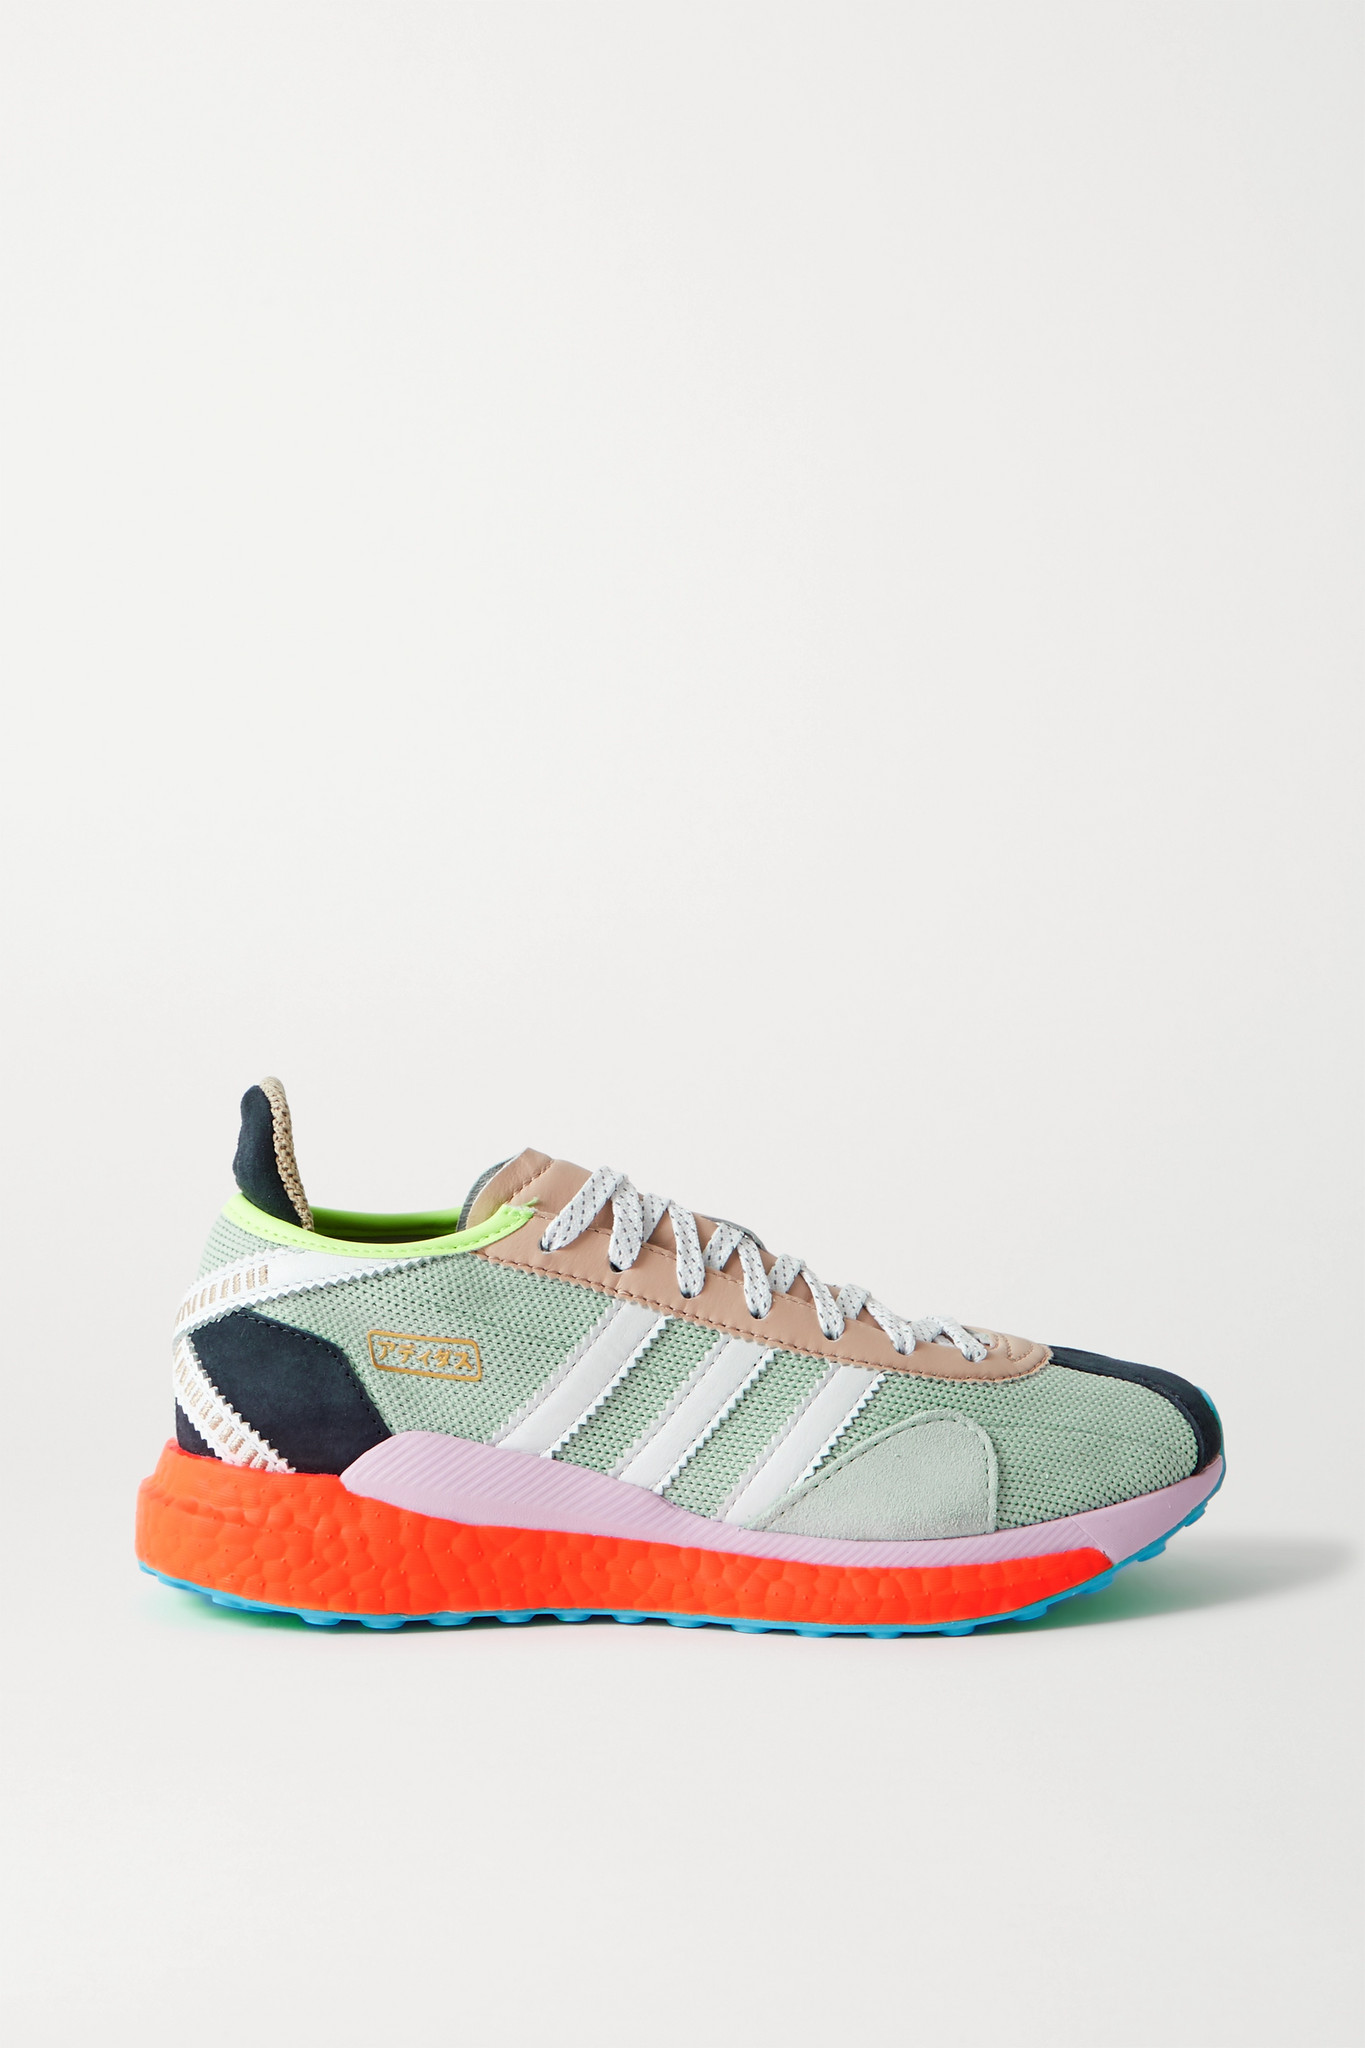 ADIDAS ORIGINALS - + Human Made Tokio Solar Hu Leather And Suede-trimmed Mesh Sneakers - Green - UK8